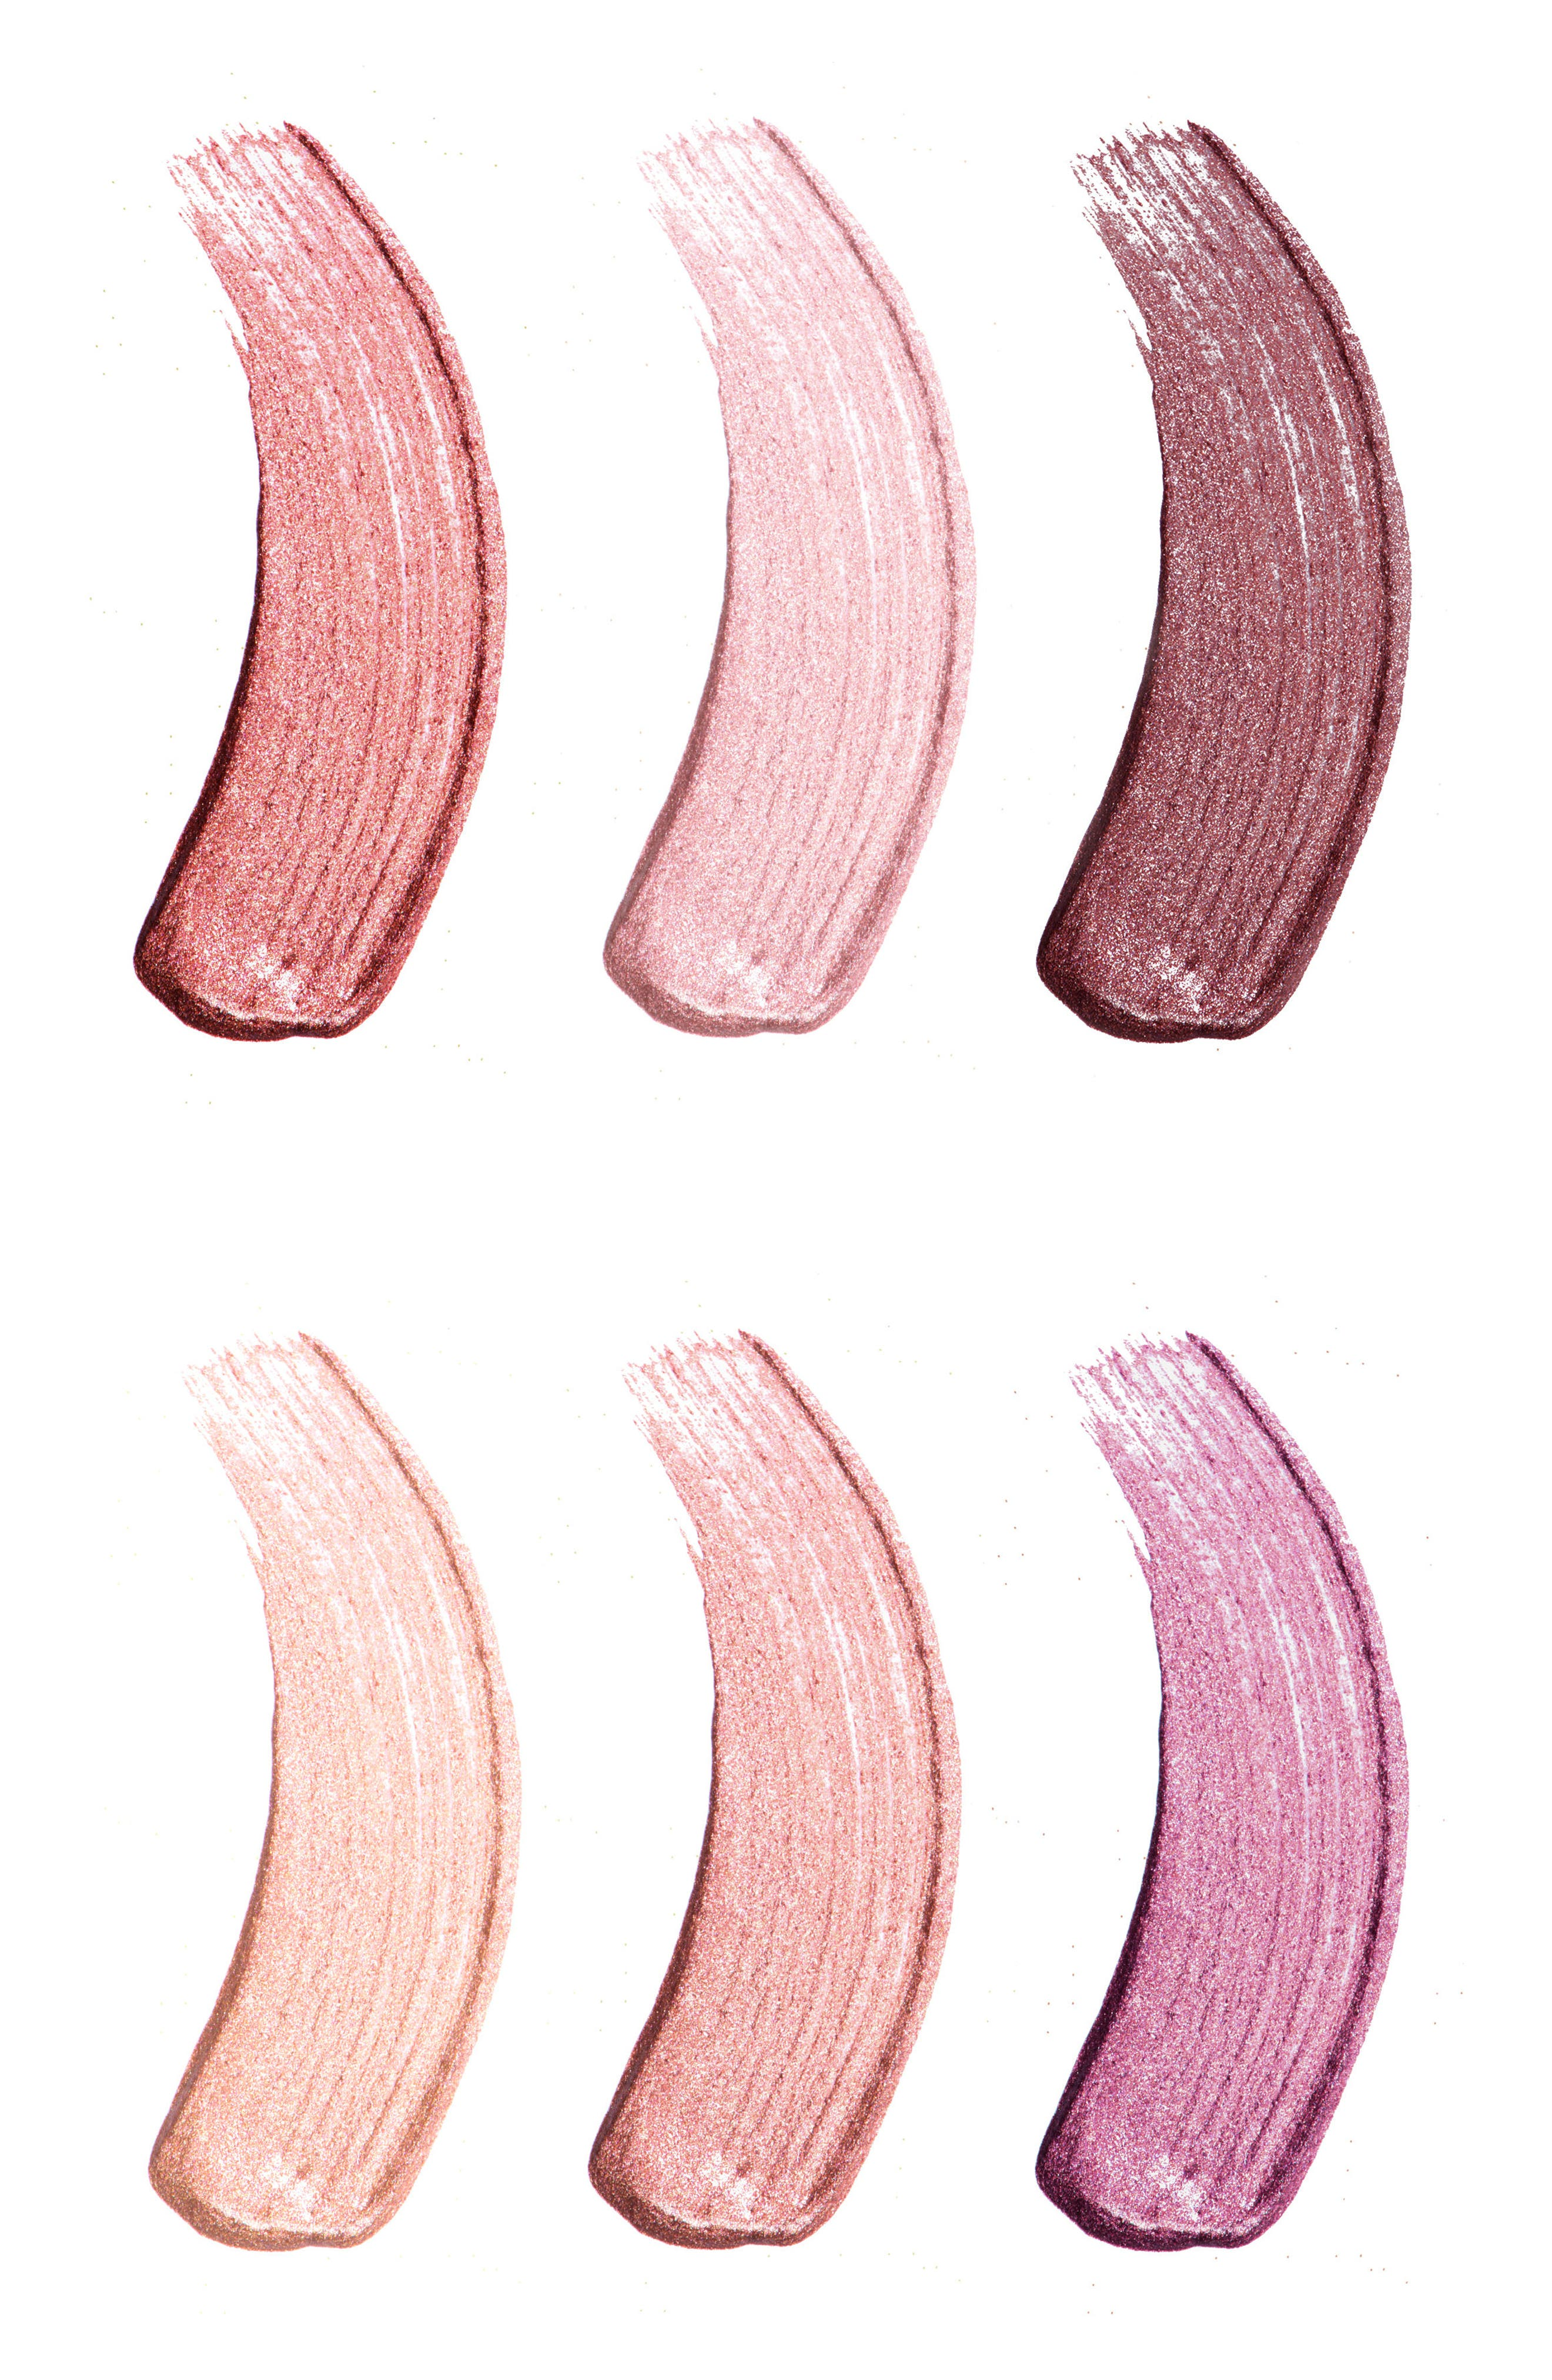 Alternate Image 4  - Jouer Best of Metallics Mini Long-Wear Lip Crème Liquid Lipstick Collection ($32 Value)